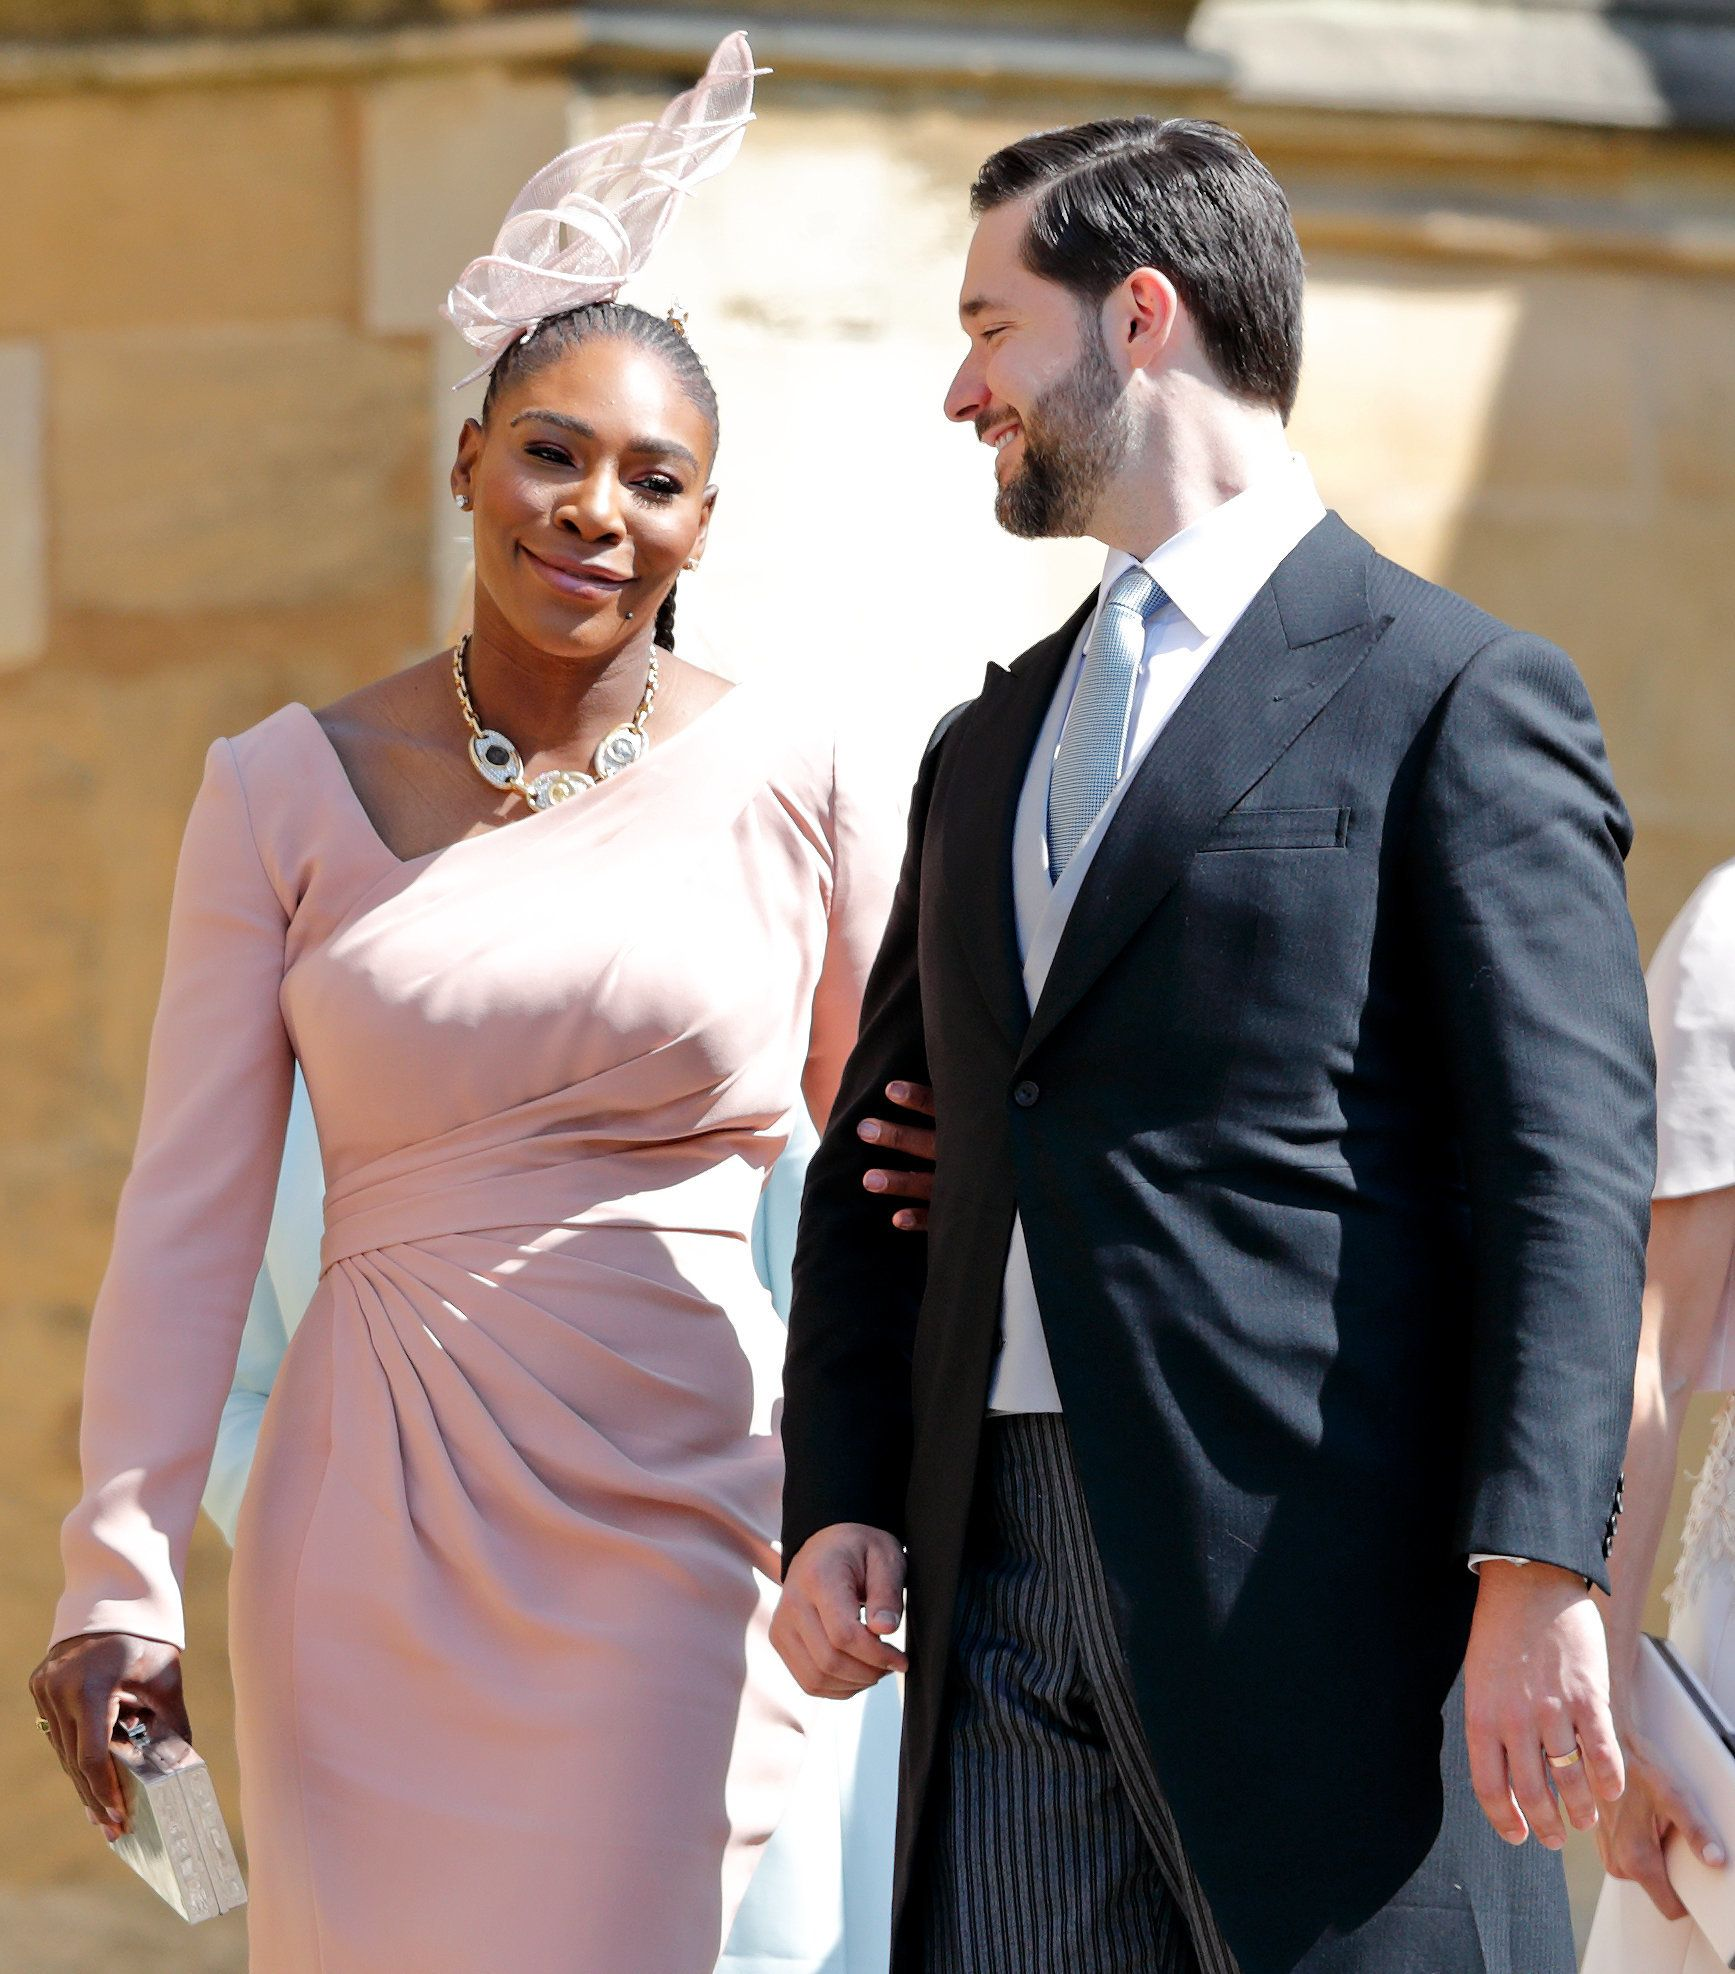 WINDSOR, UNITED KINGDOM - MAY 19: (EMBARGOED FOR PUBLICATION IN UK NEWSPAPERS UNTIL 24 HOURS AFTER CREATE DATE AND TIME) Serena Williams and Alexis Ohanian attend the wedding of Prince Harry to Ms Meghan Markle at St George's Chapel, Windsor Castle on May 19, 2018 in Windsor, England. Prince Henry Charles Albert David of Wales marries Ms. Meghan Markle in a service at St George's Chapel inside the grounds of Windsor Castle. Among the guests were 2200 members of the public, the royal family and Ms. Markle's Mother Doria Ragland. (Photo by Max Mumby/Indigo/Getty Images)